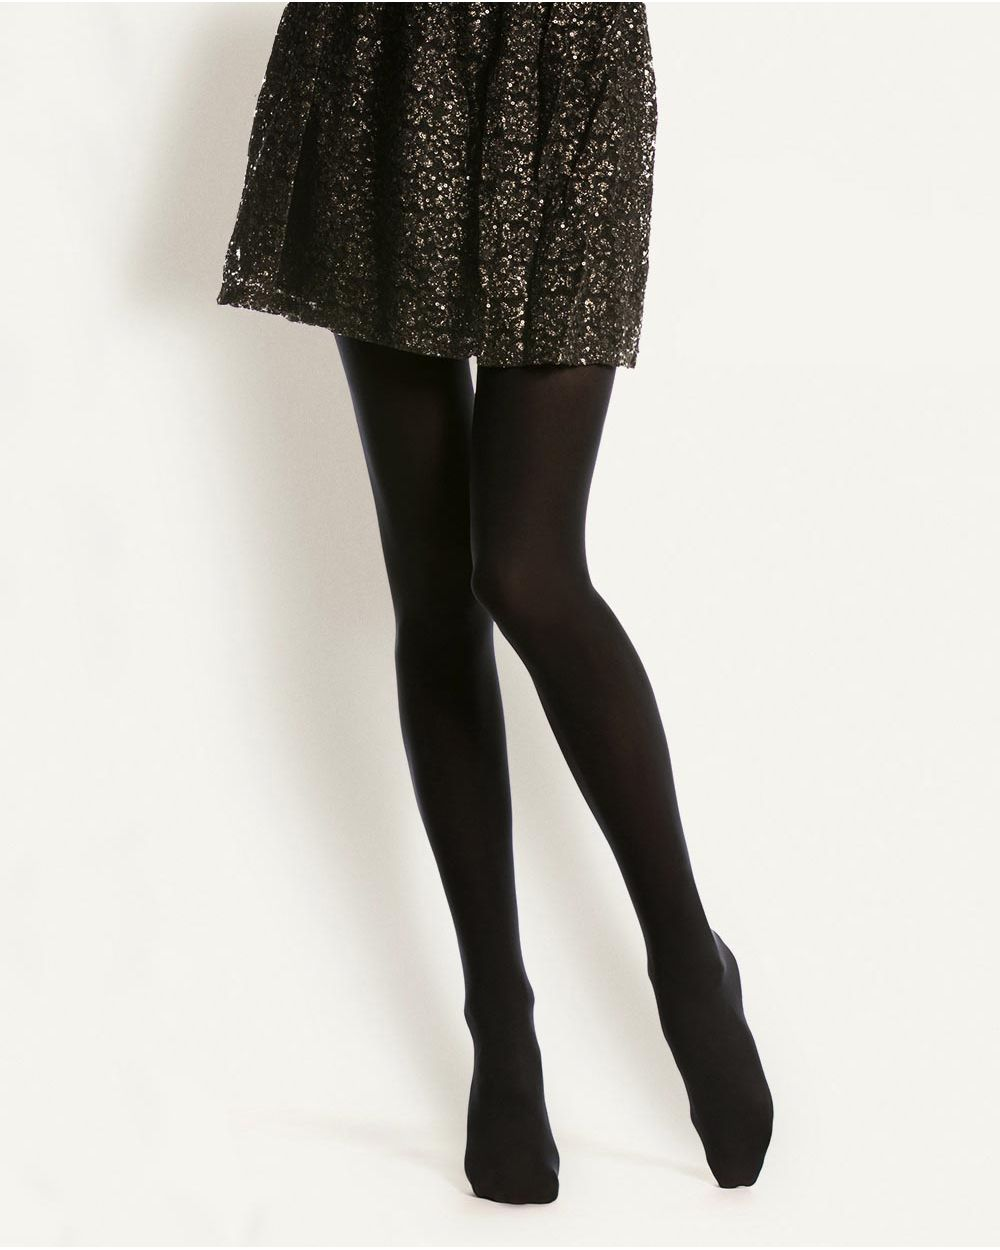 50D completely opaque tights - Excellence